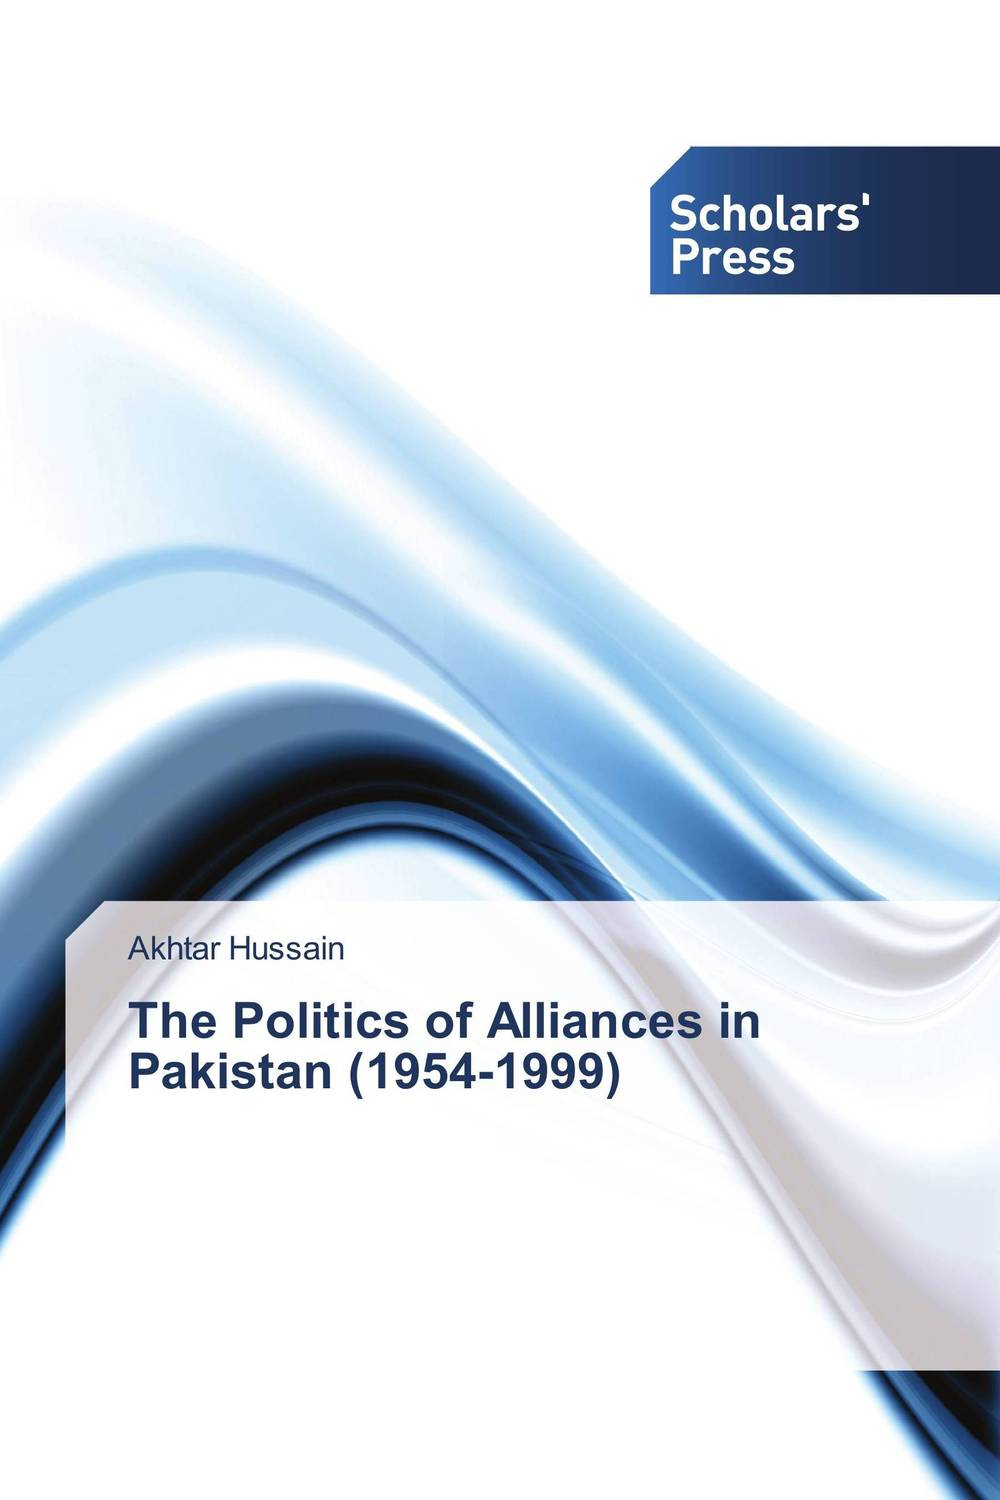 The Politics of Alliances in Pakistan (1954-1999) democracy and dictatorship in uganda a politics of dispensation